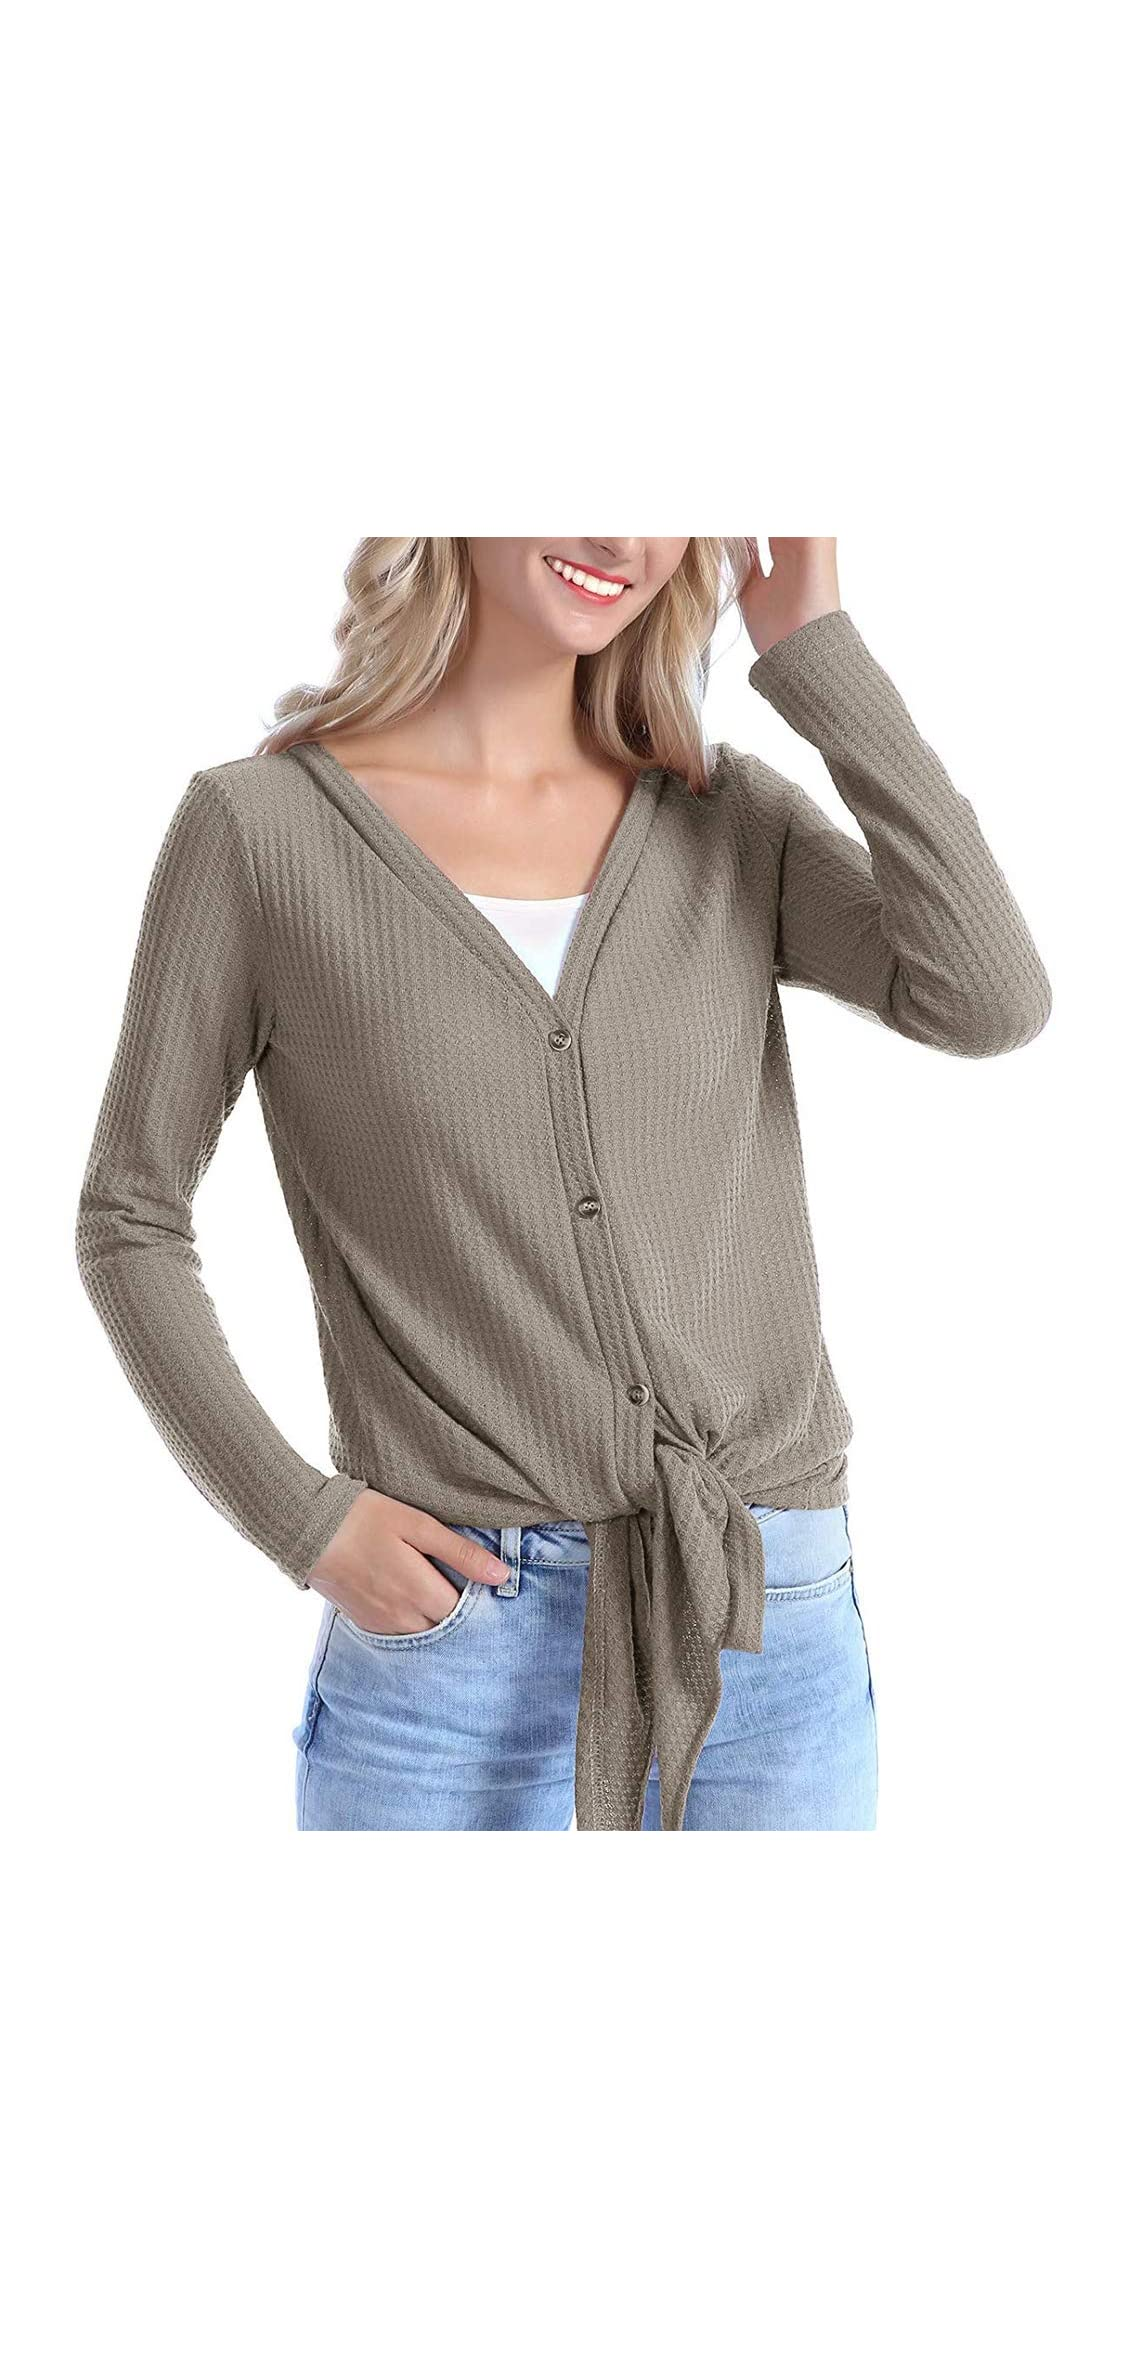 Womens Casual V Neck Tunic Lightweight Sweaters Plus